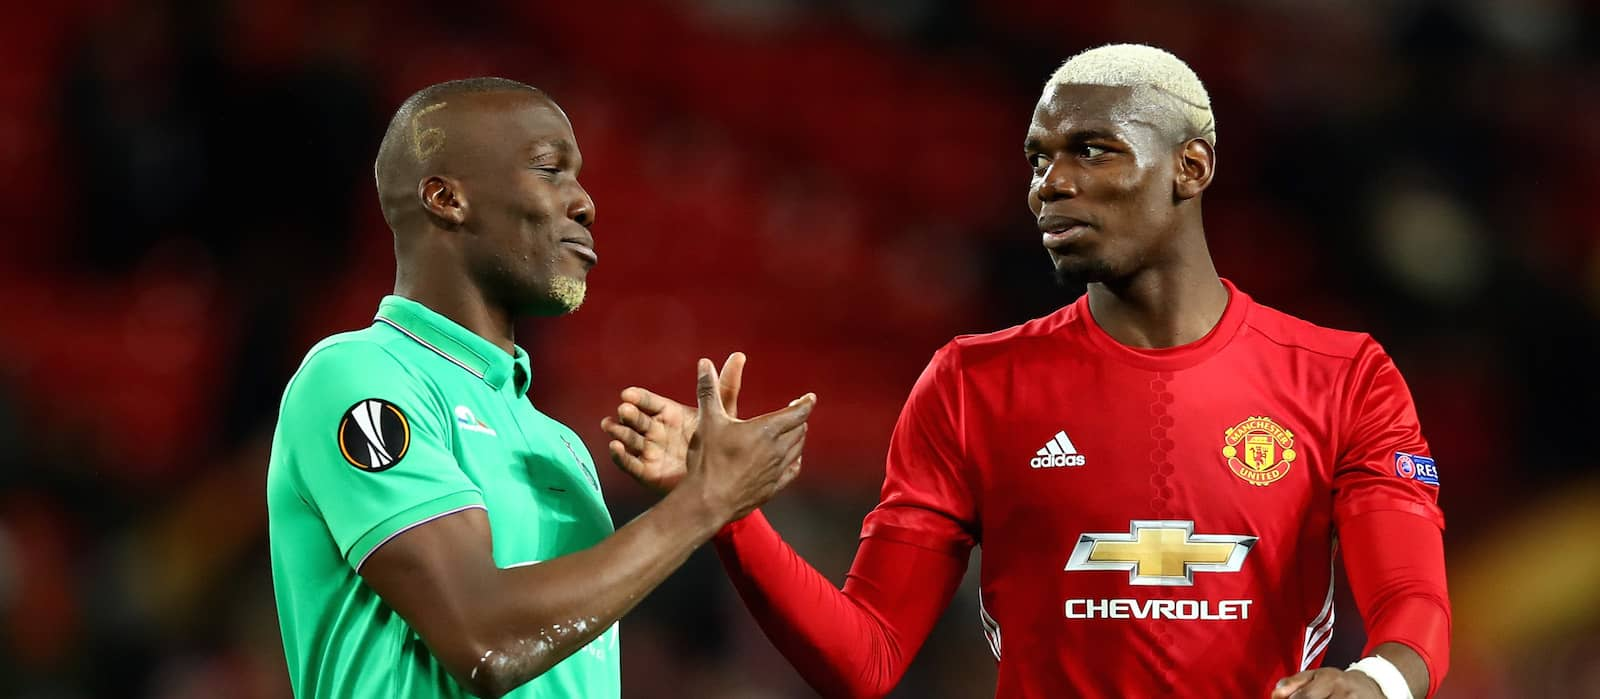 Man United fans delighted with Paul Pogba's performance against St. Etienne